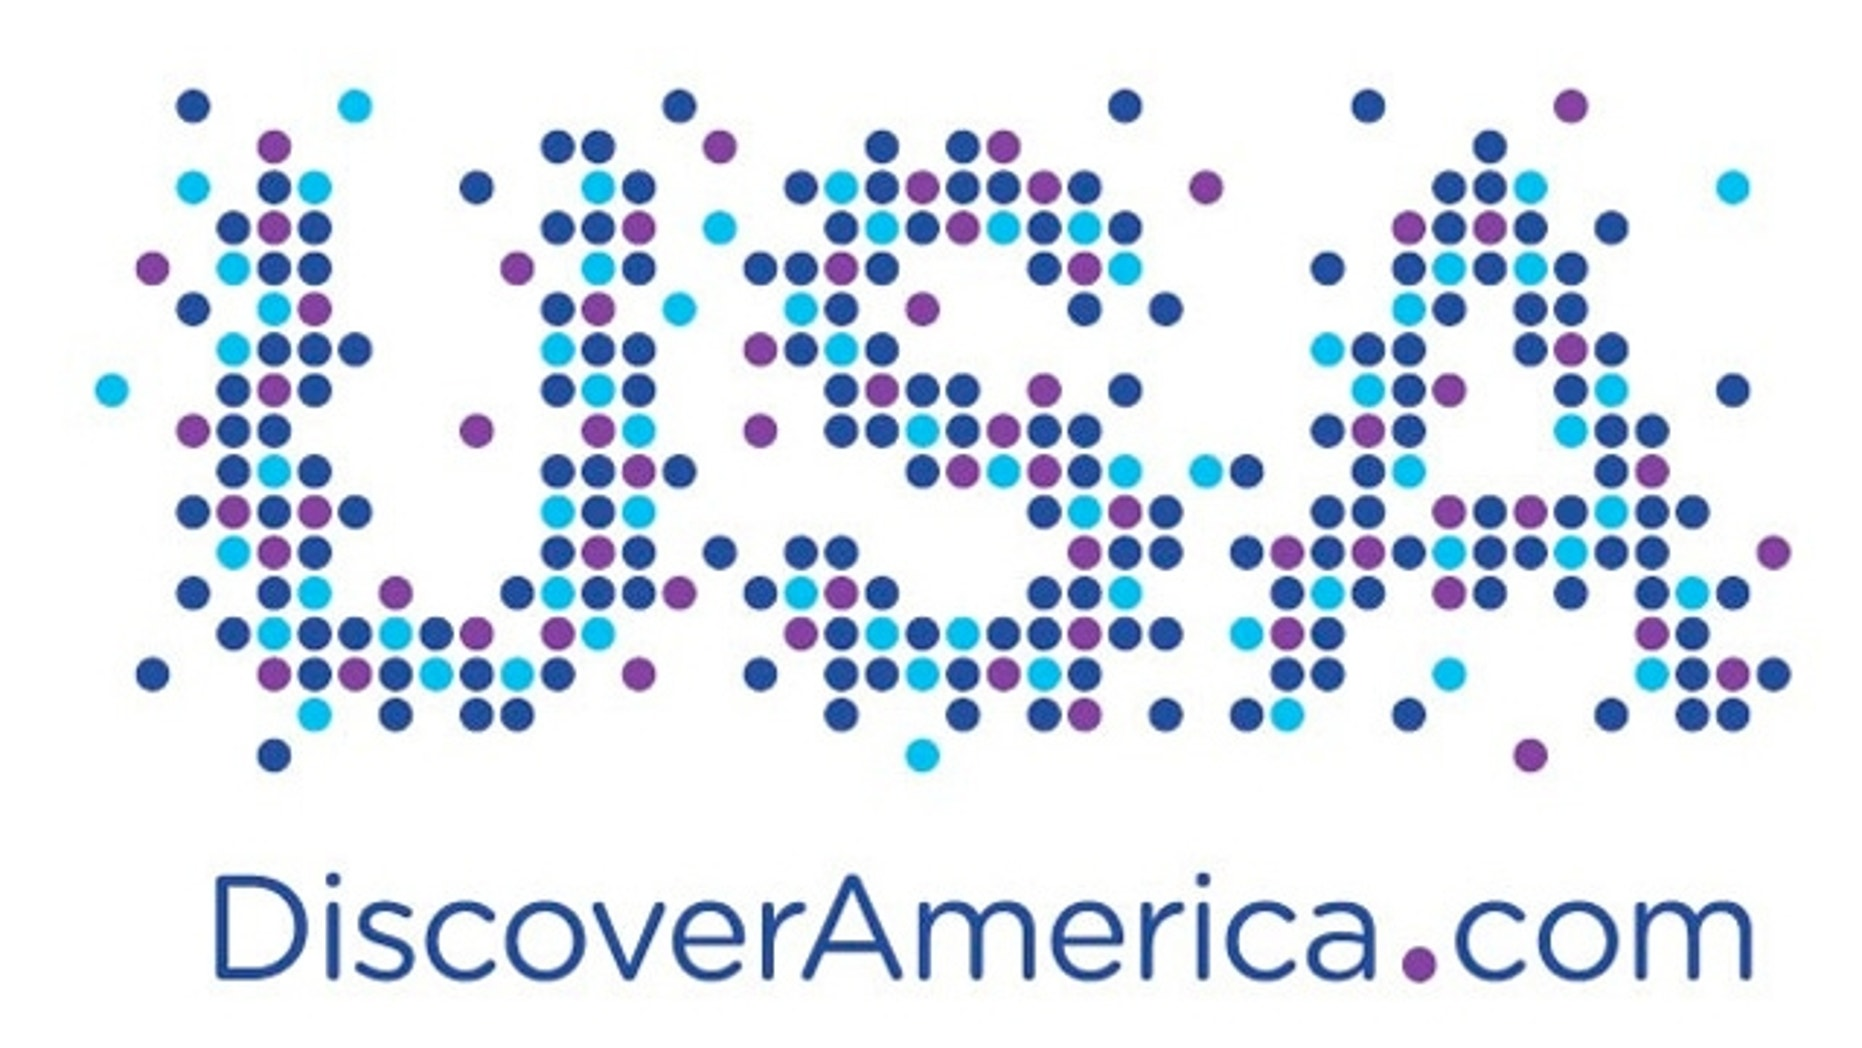 Brand USA's new logo, which is part of a new national tourism campaign to rebrand the United States and draw international visitors.